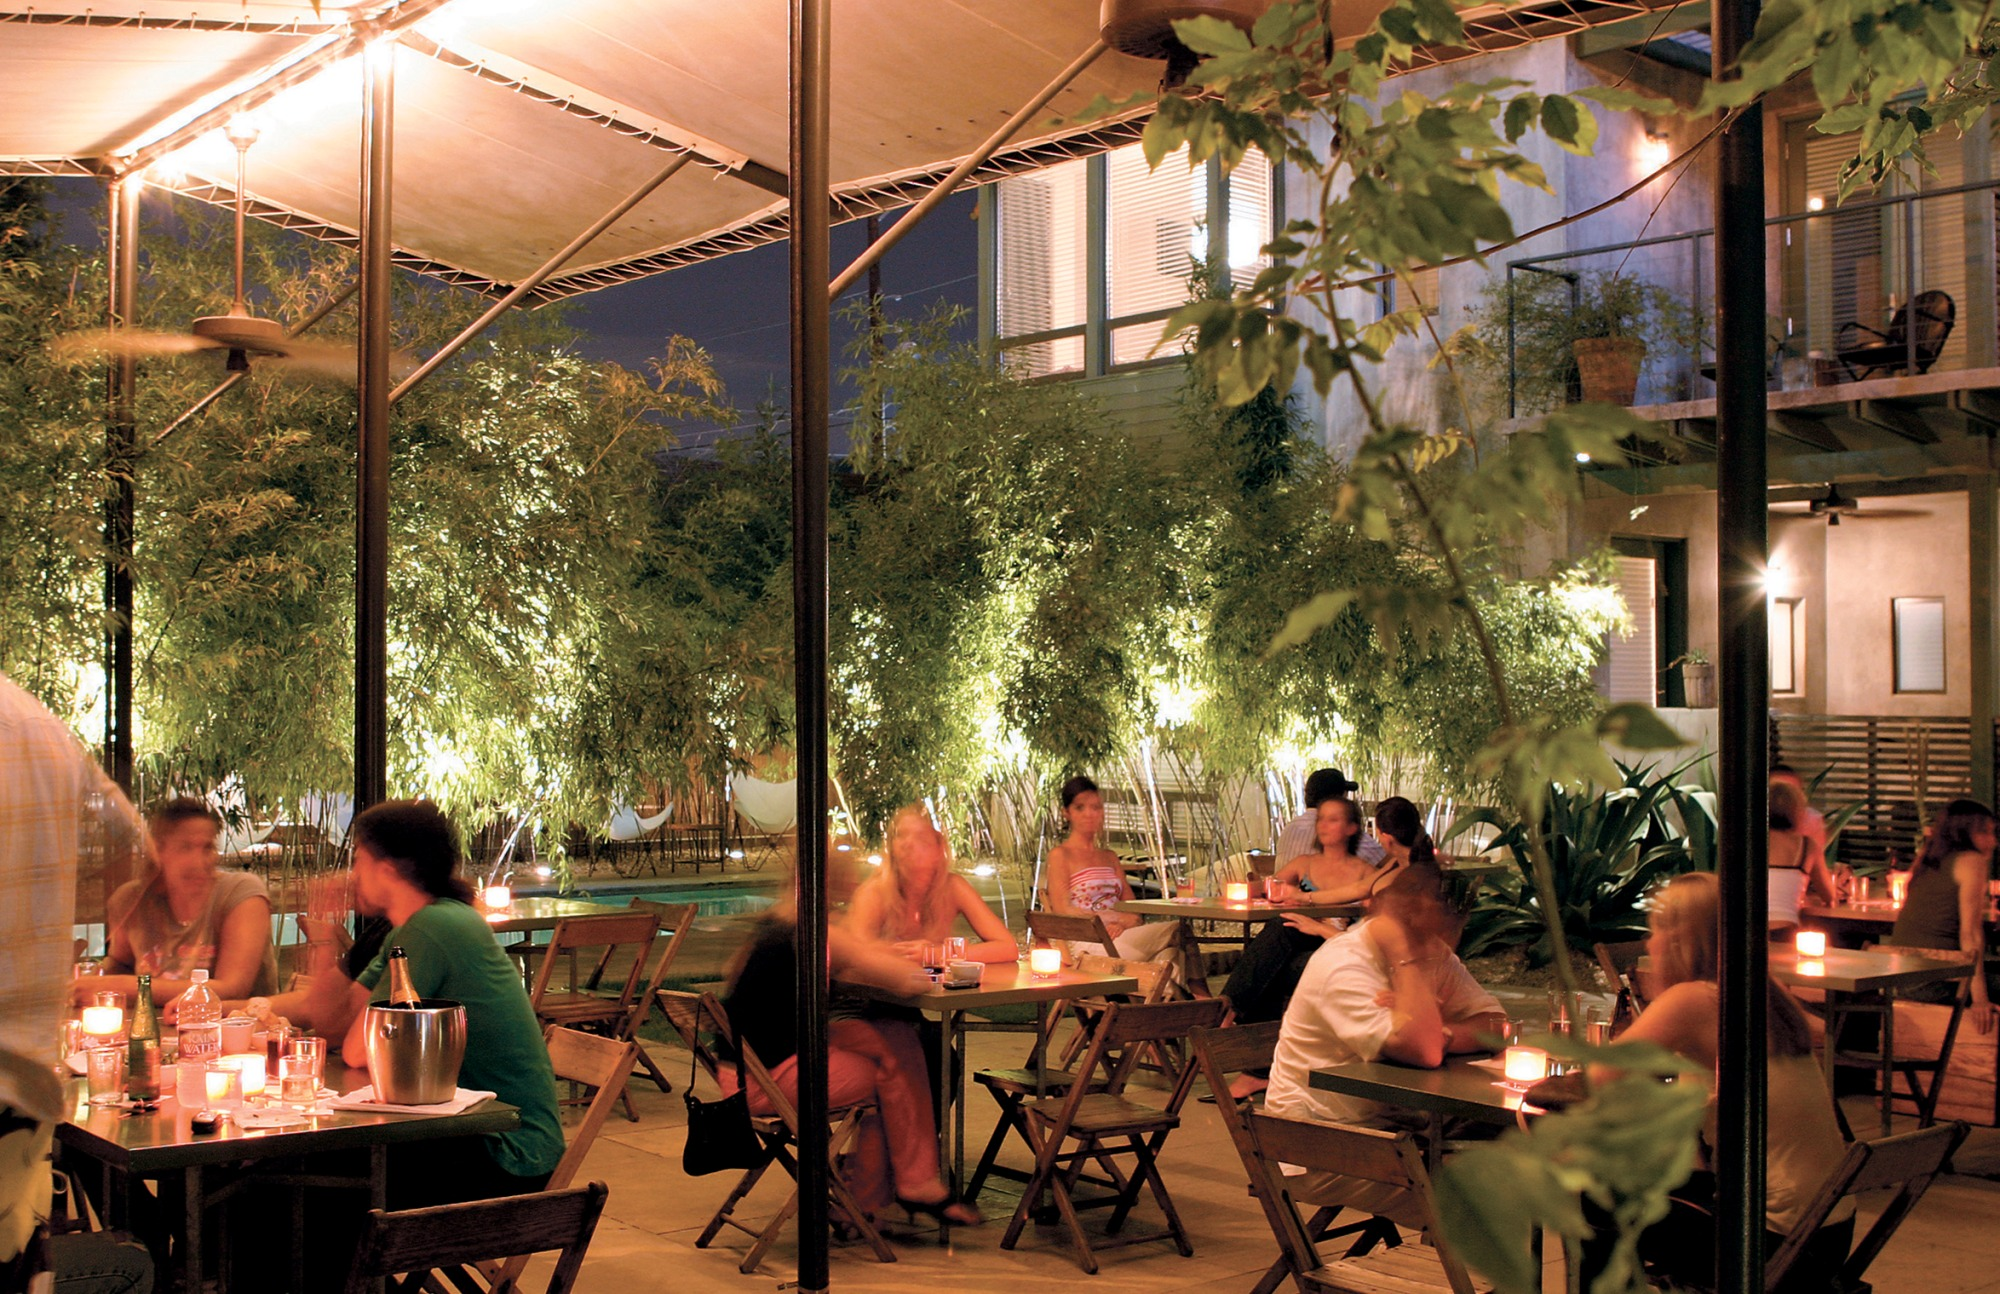 Shaded, landscaped courtyard for dining.